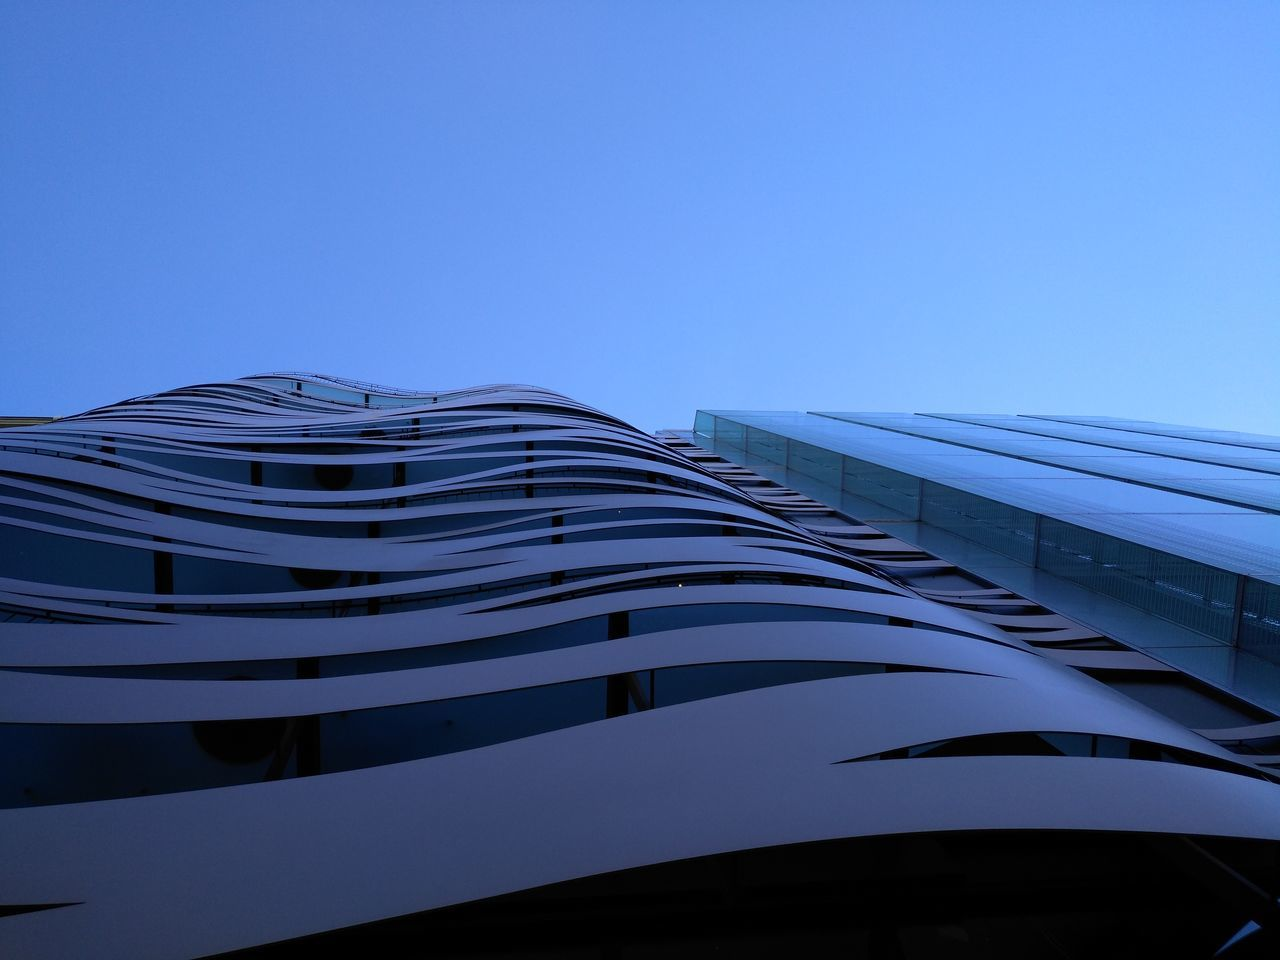 architecture, building exterior, built structure, copy space, low angle view, clear sky, blue, modern, no people, skyscraper, outdoors, day, city, sky